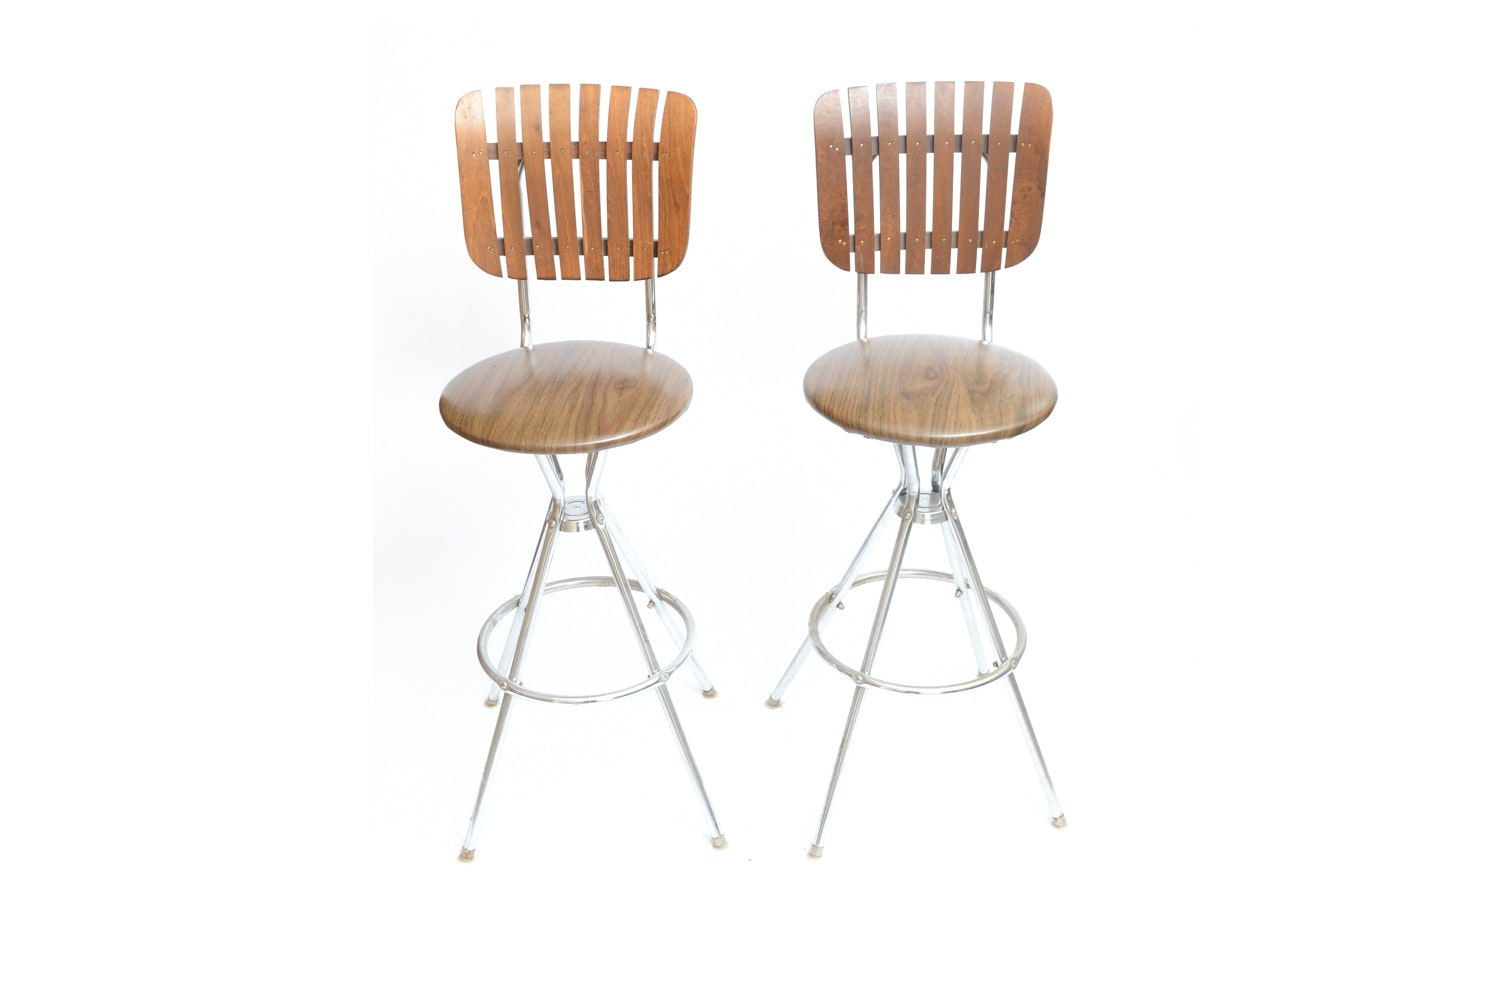 Pair of Mid Century Modern Bar Stools after Arthur Umanoff